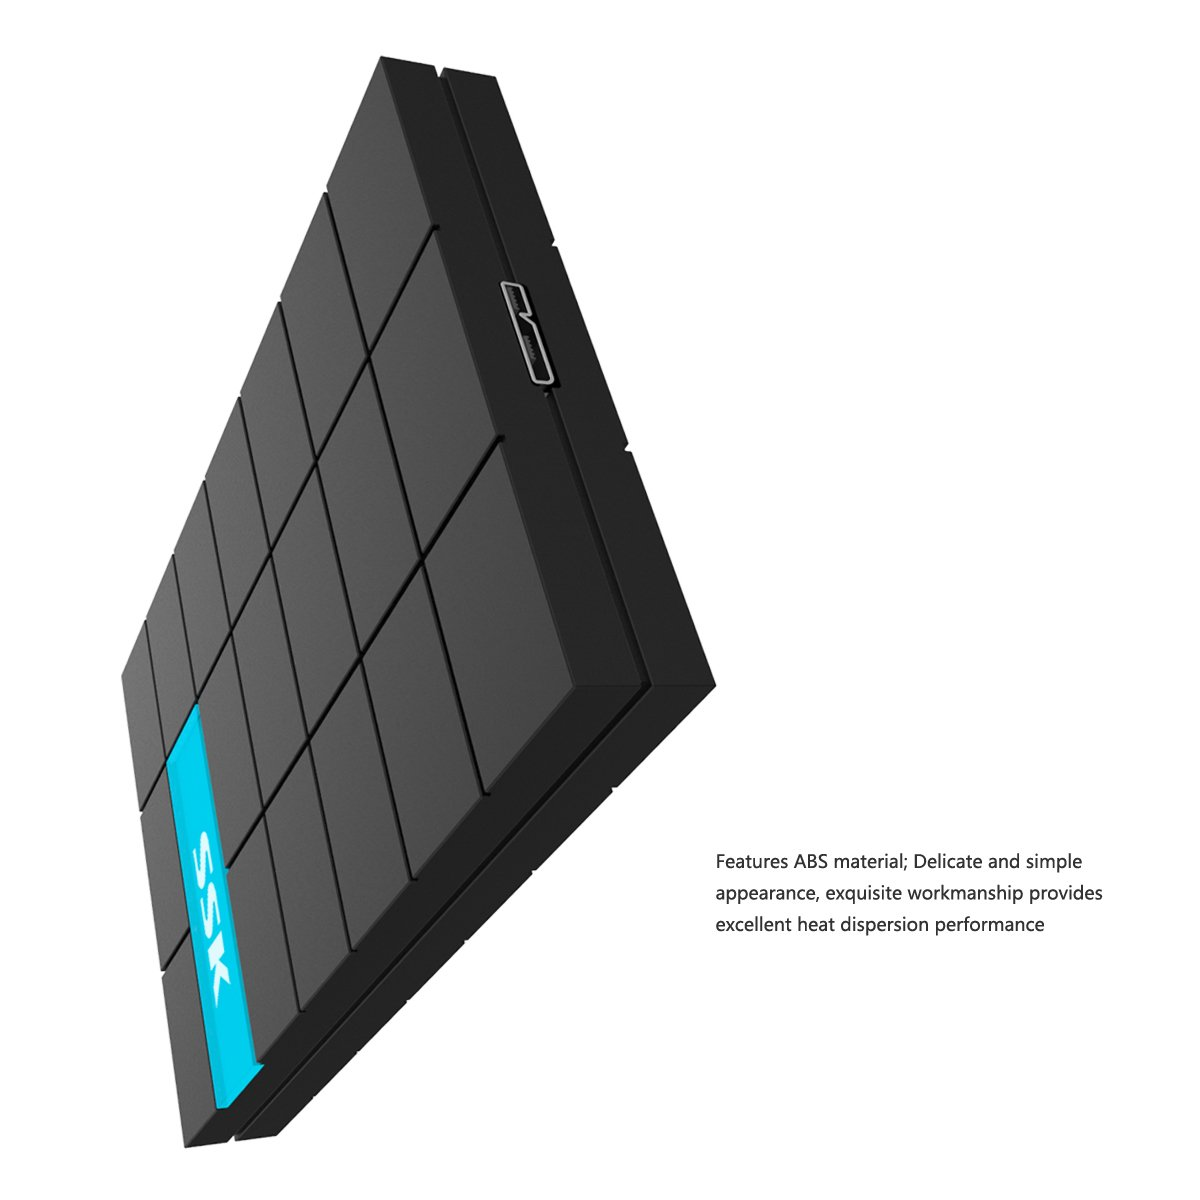 SSK SHE080 Portable USB 3.0 SATA Hard Drive Disk External Enclosure For 9.5mm 7mm 2.5'' HDD And SSD (Black) by SSK (Image #4)